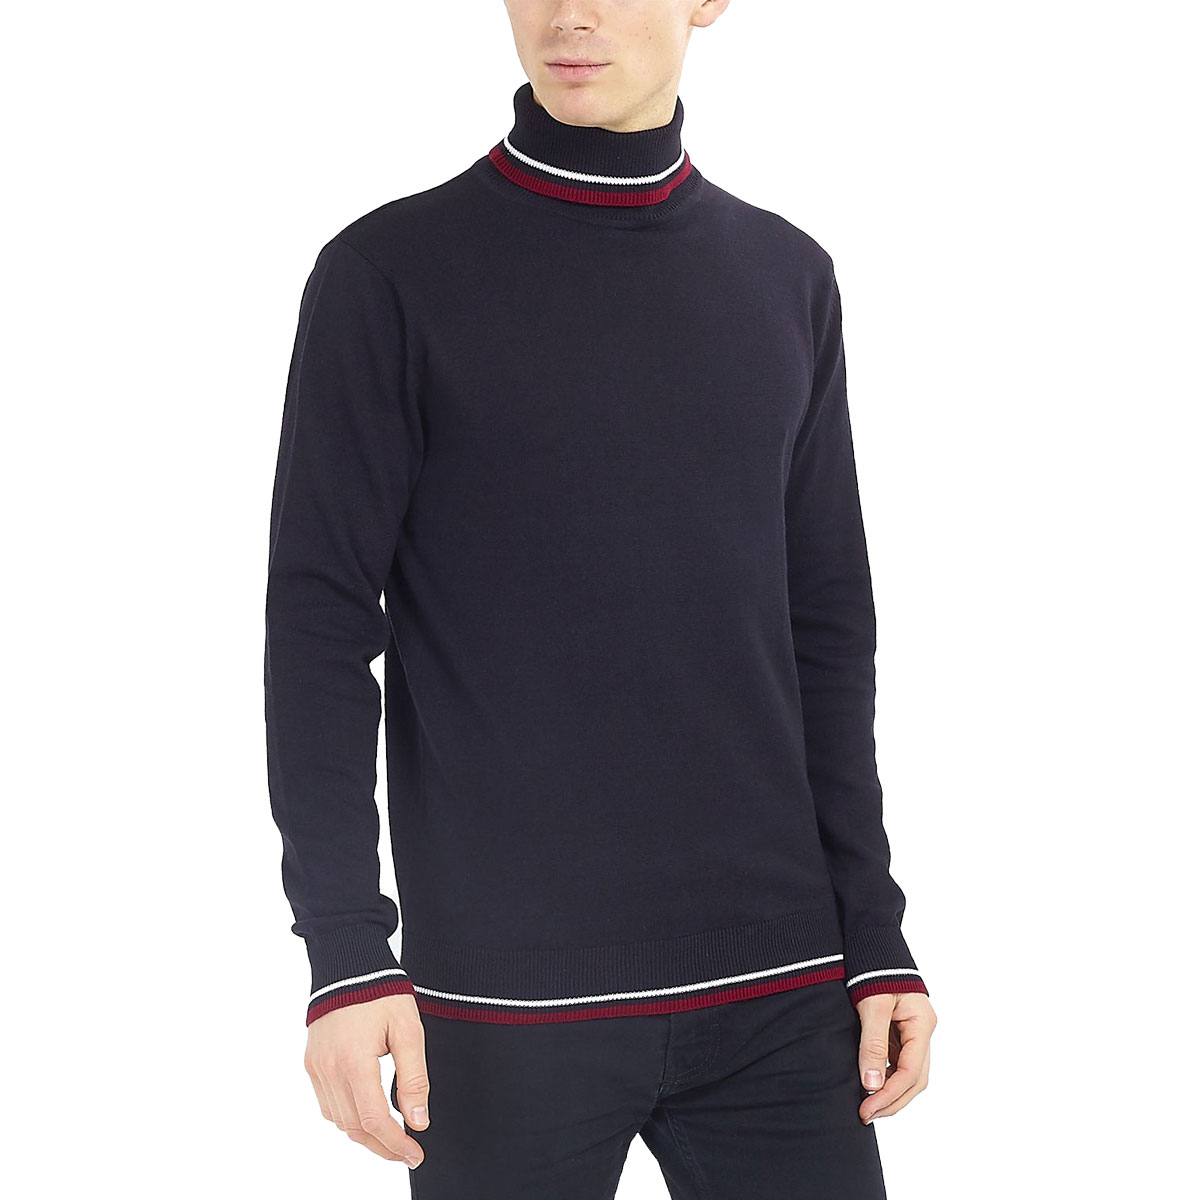 Brave-Soul-Mens-Turtle-Neck-Jumper-Contrast-Tipped-Hallis thumbnail 11